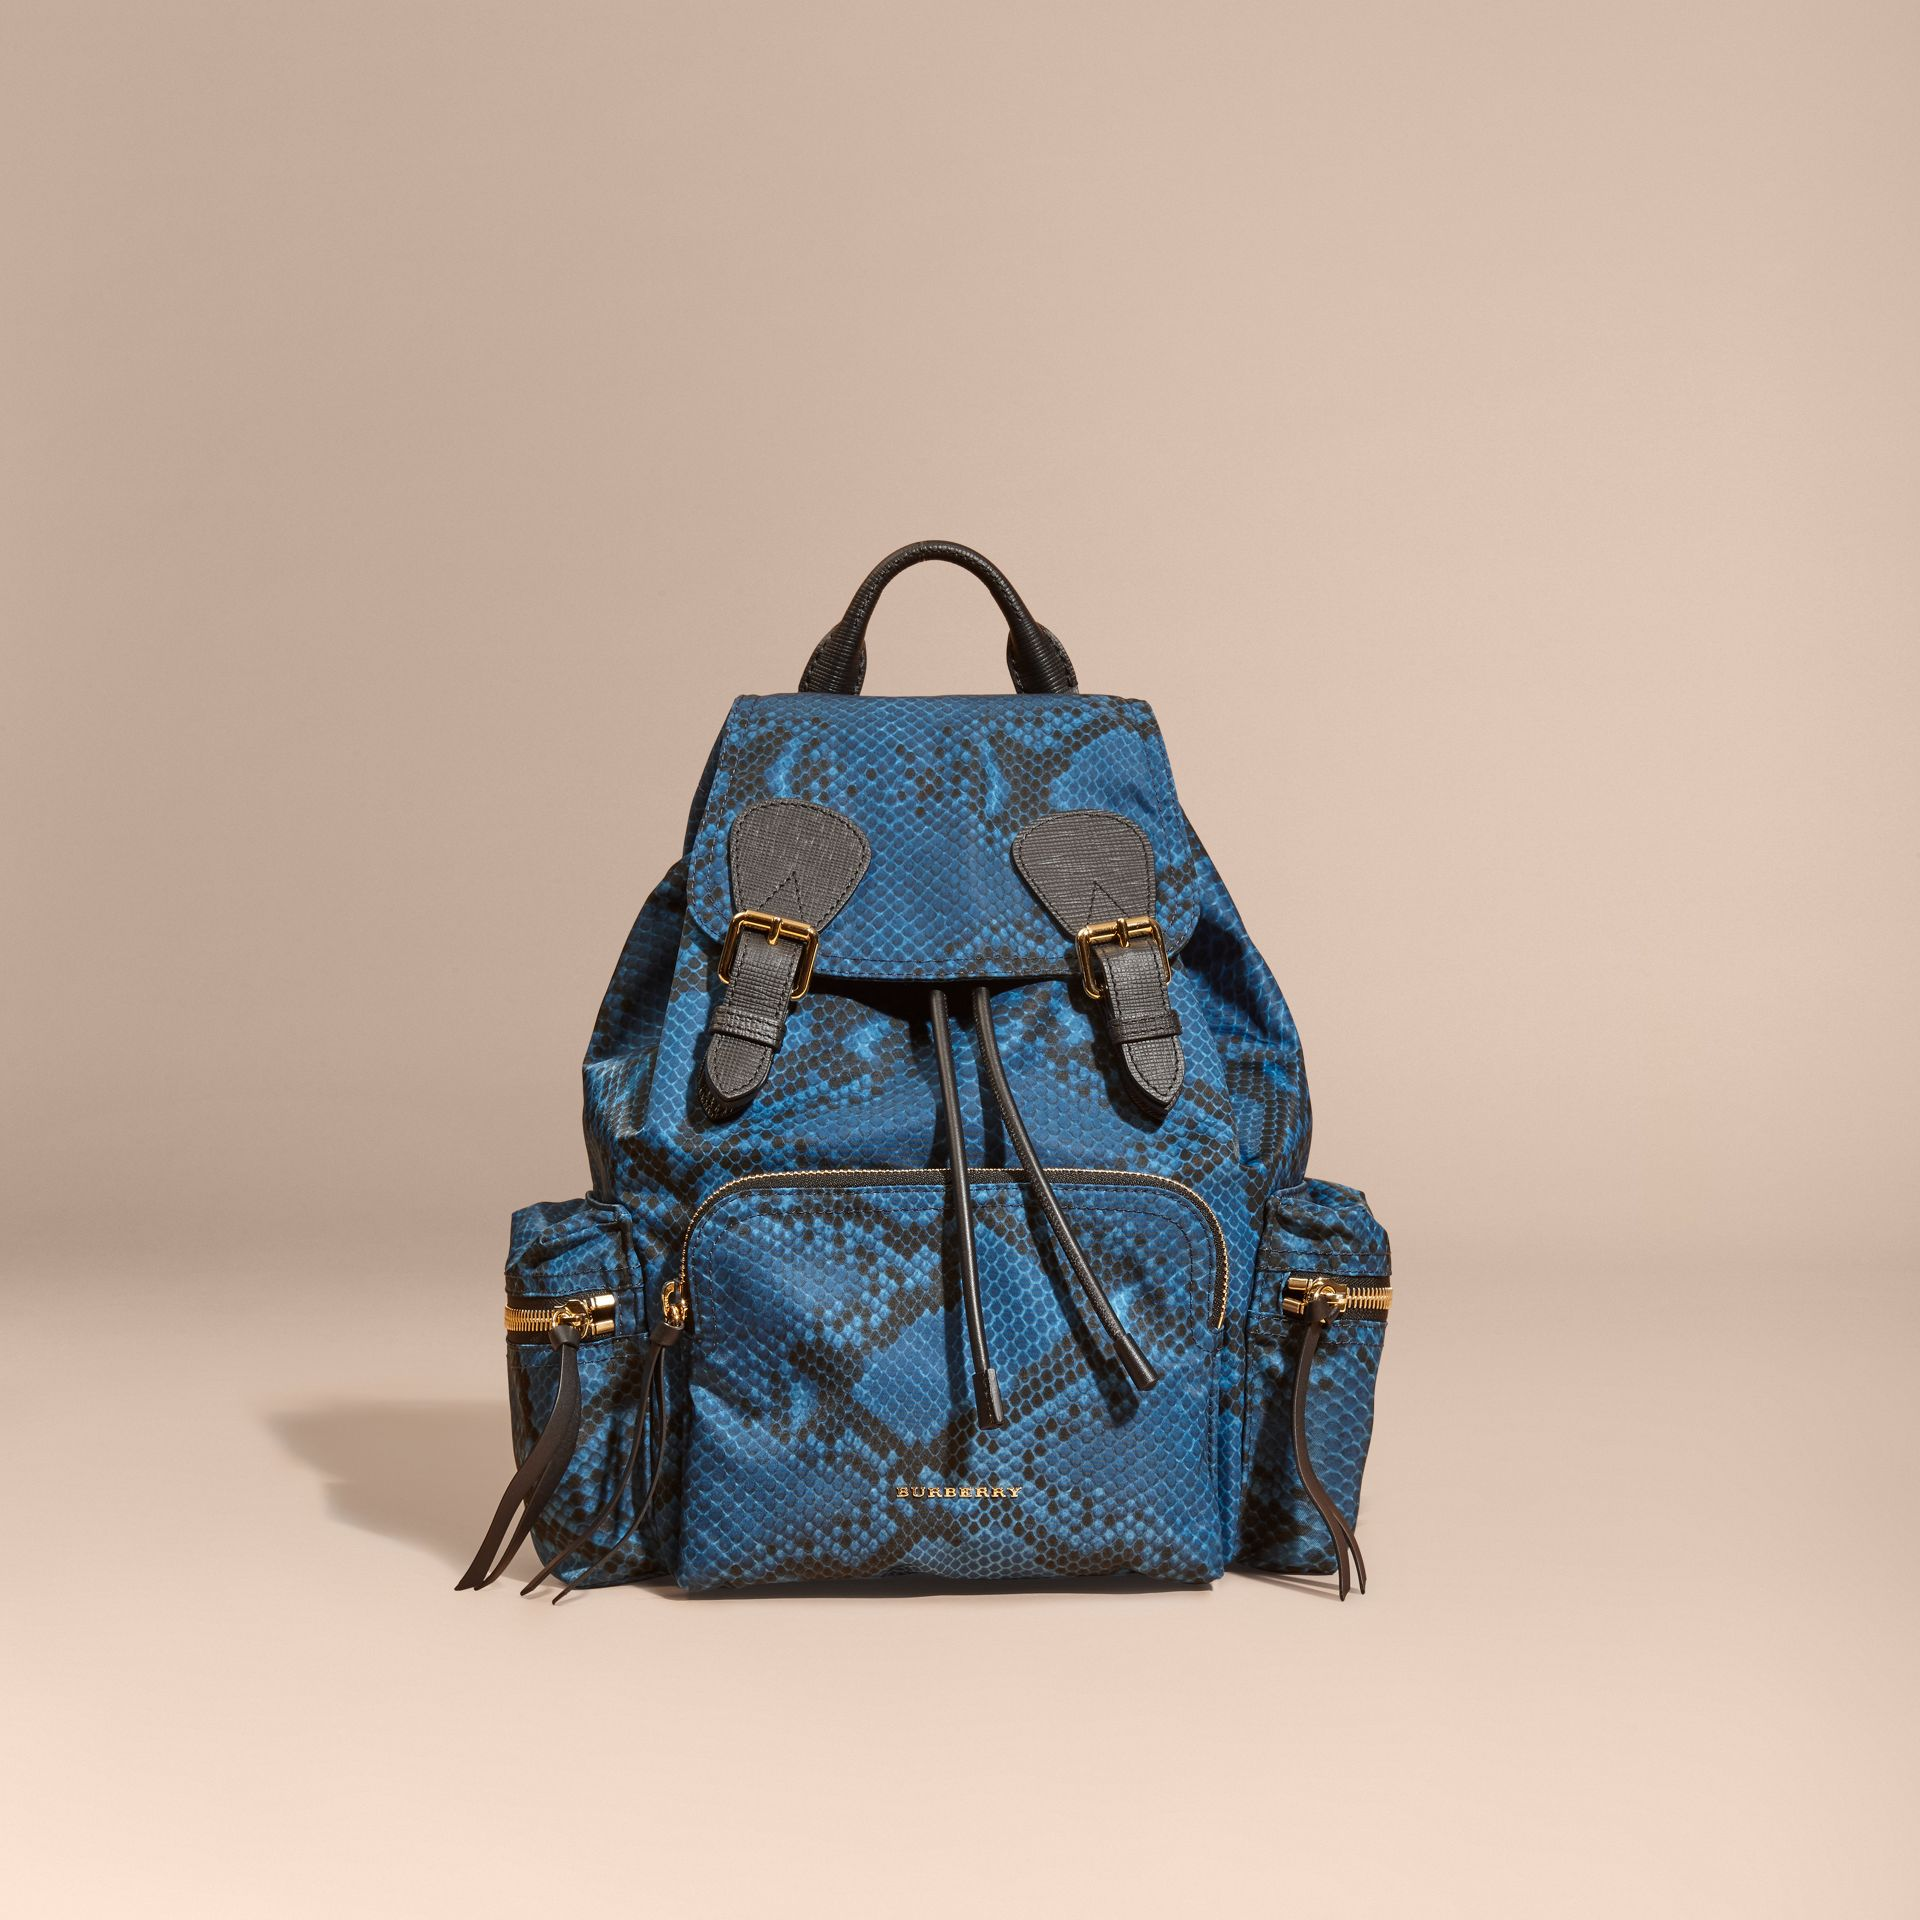 Sac The Rucksack medium en nylon à imprimé python et cuir Bleu - photo de la galerie 8